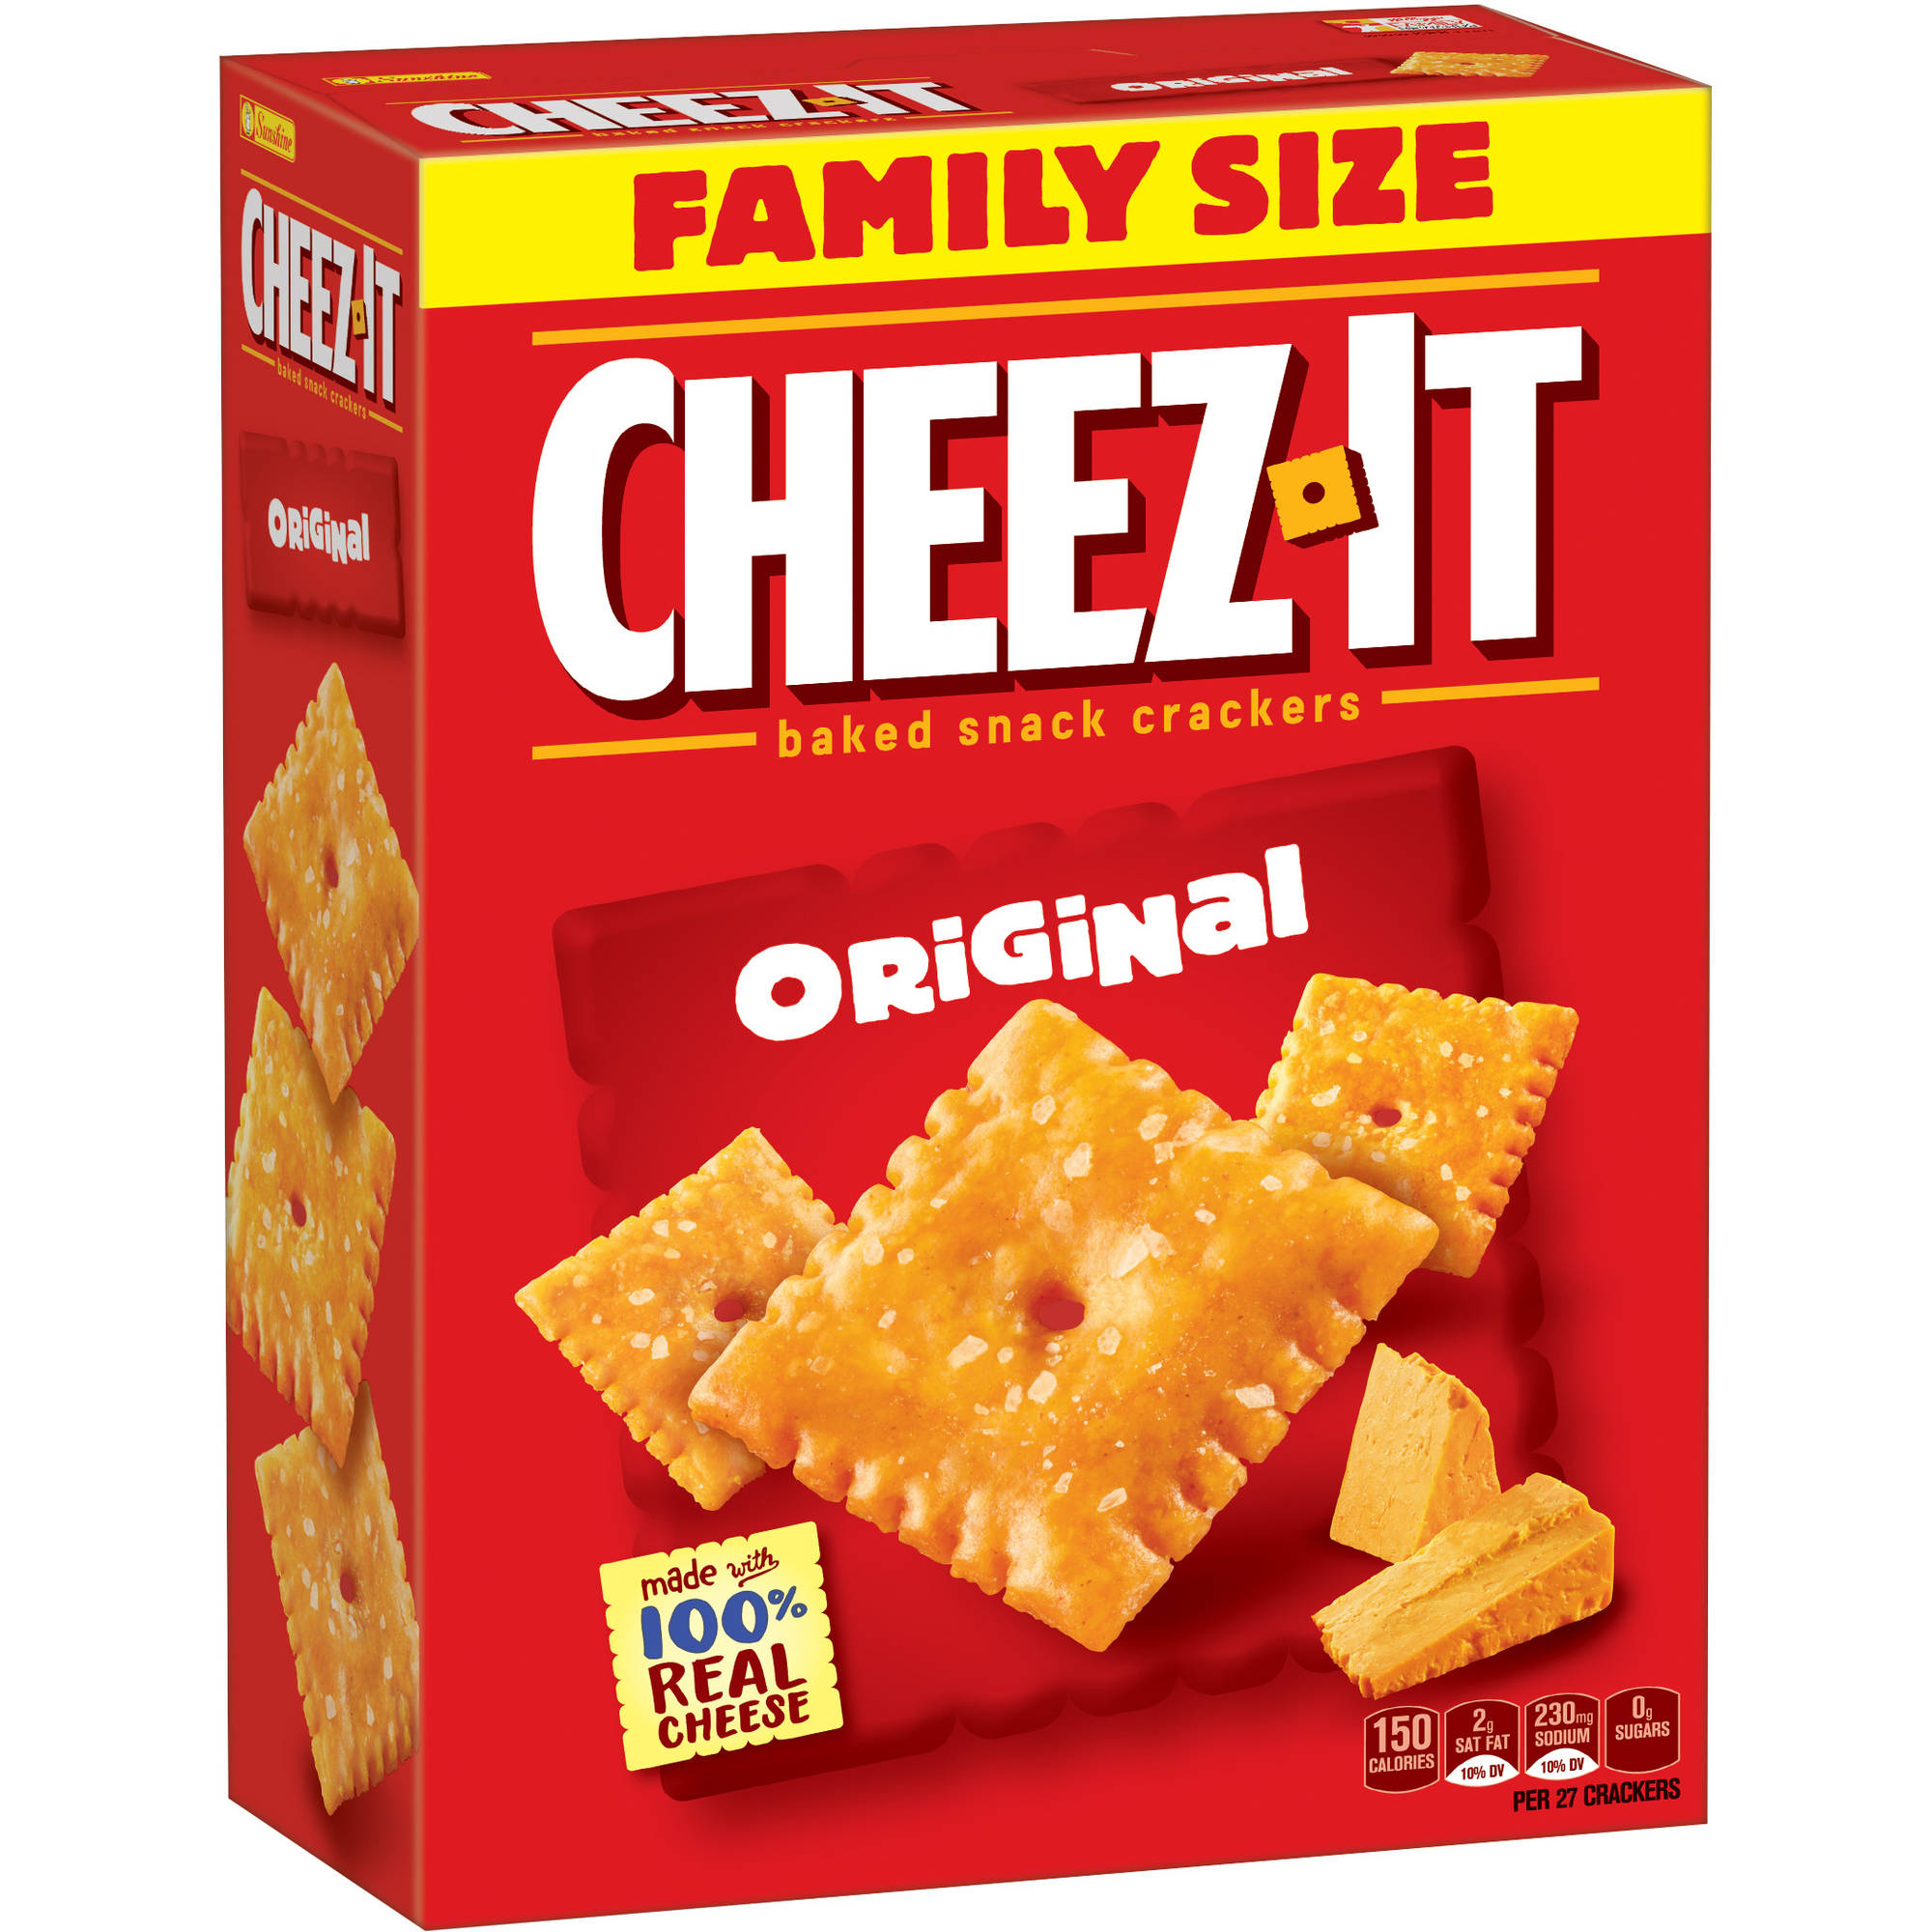 Cheez-It Original Baked Snack Crackers, box of 21 oz